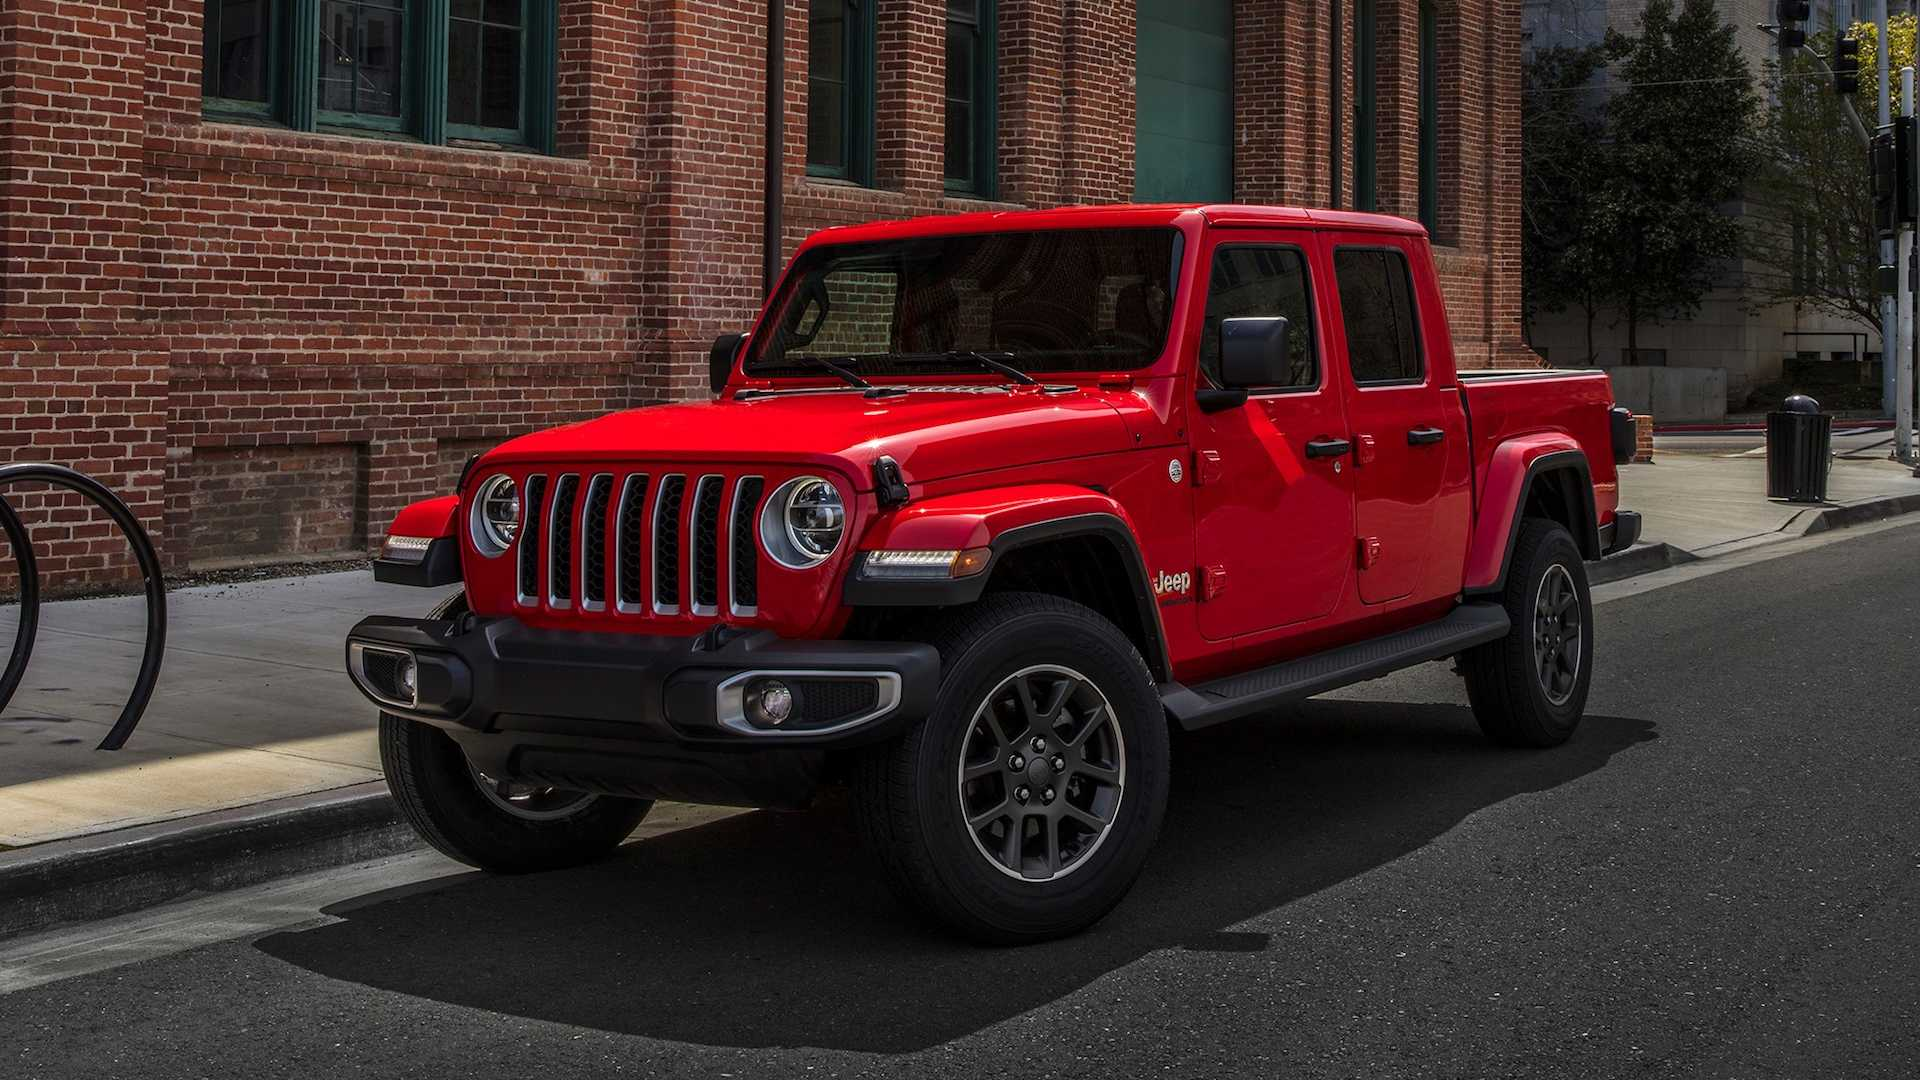 52 Best Review When Is The 2020 Jeep Gladiator Coming Out New Concept for When Is The 2020 Jeep Gladiator Coming Out